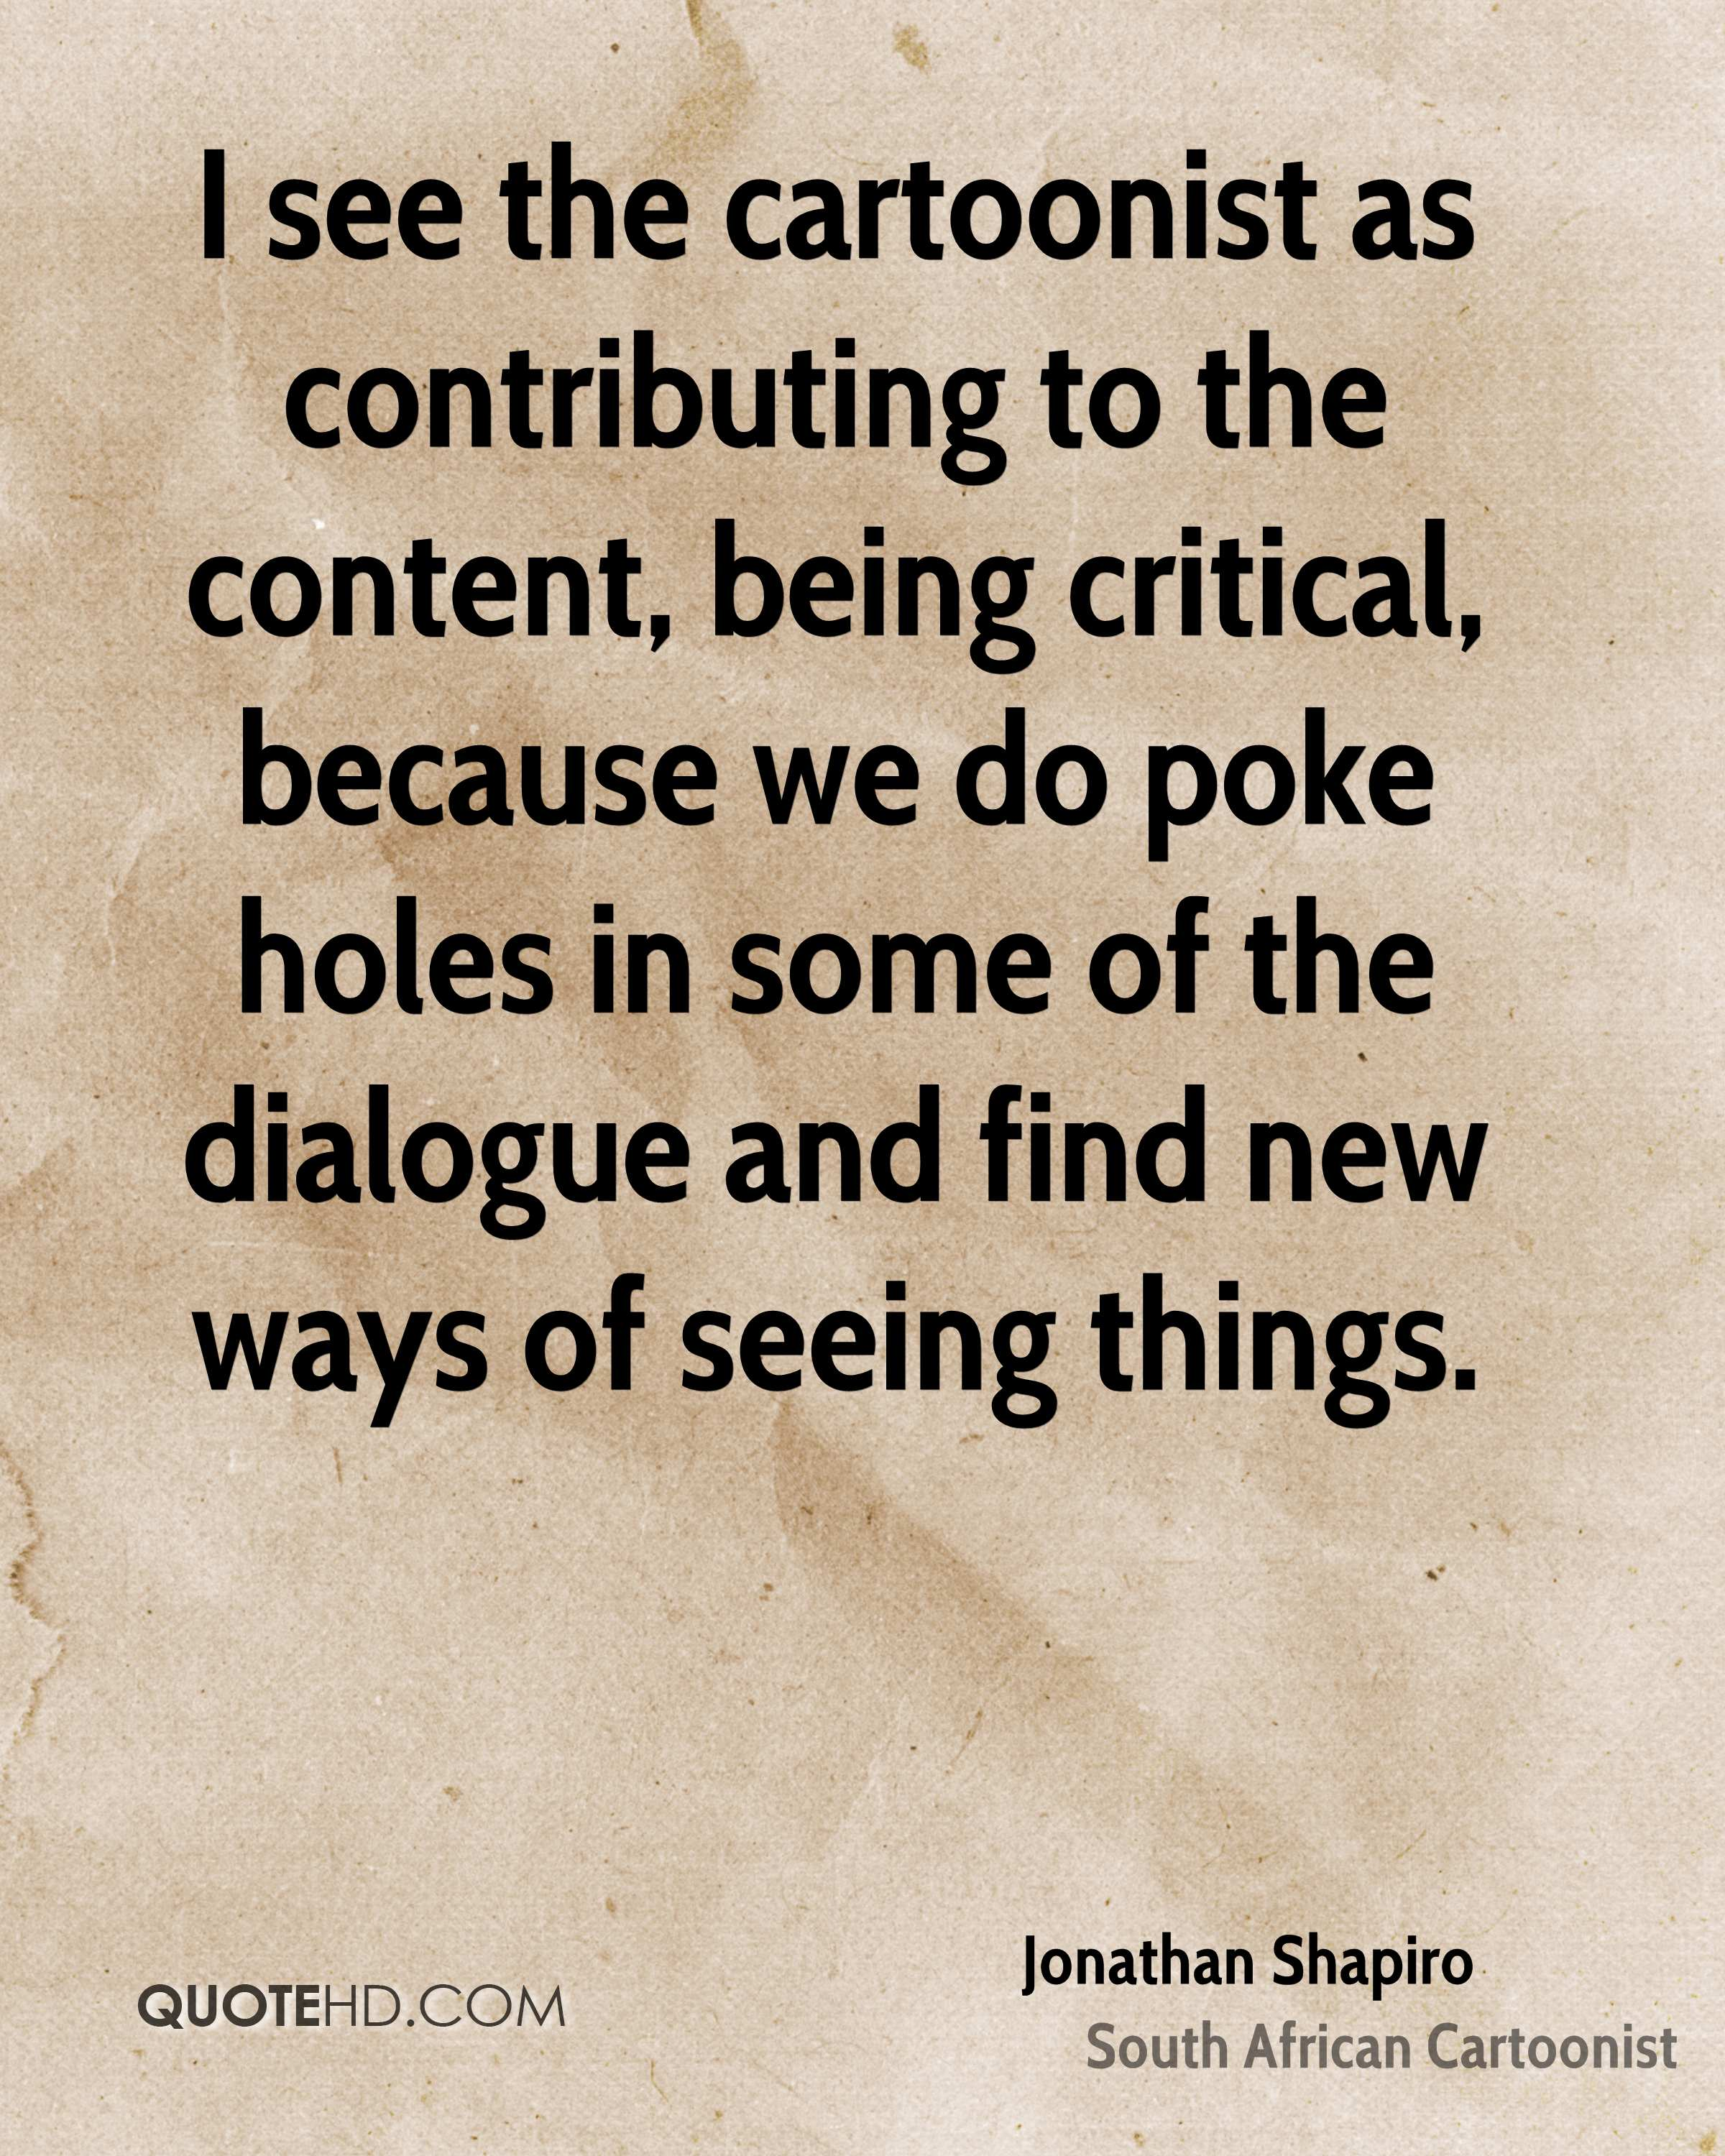 I see the cartoonist as contributing to the content, being critical, because we do poke holes in some of the dialogue and find new ways of seeing things.